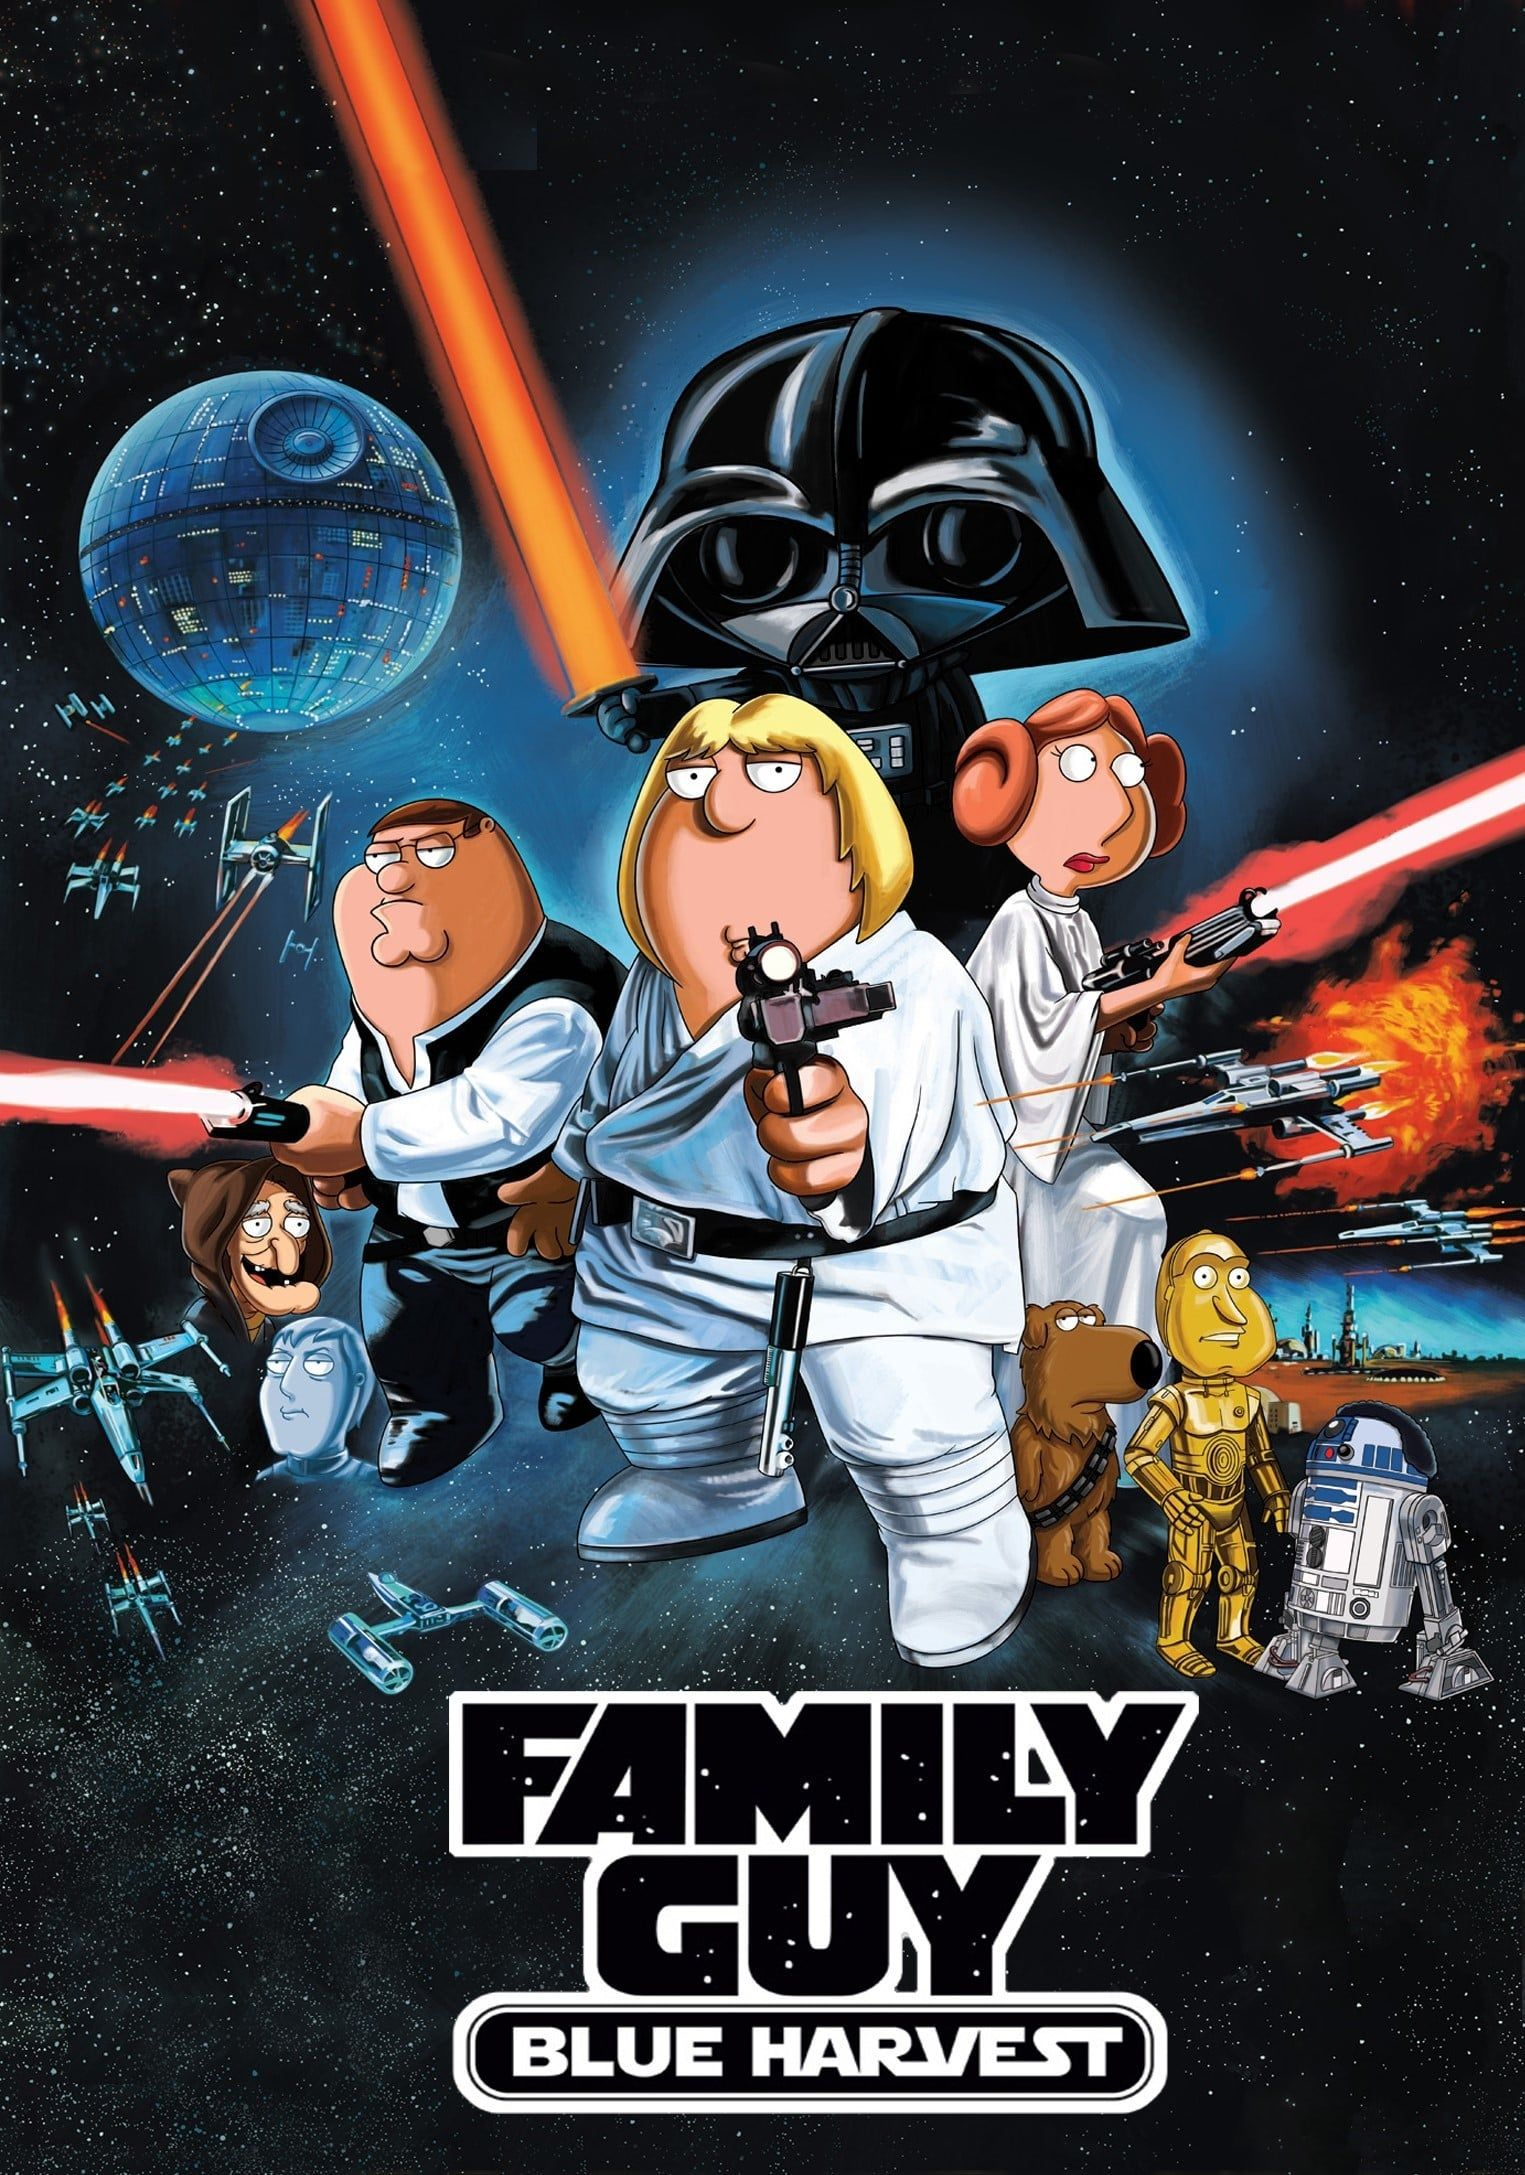 Pin by La Vista Johnowh on Family Guy Star wars poster